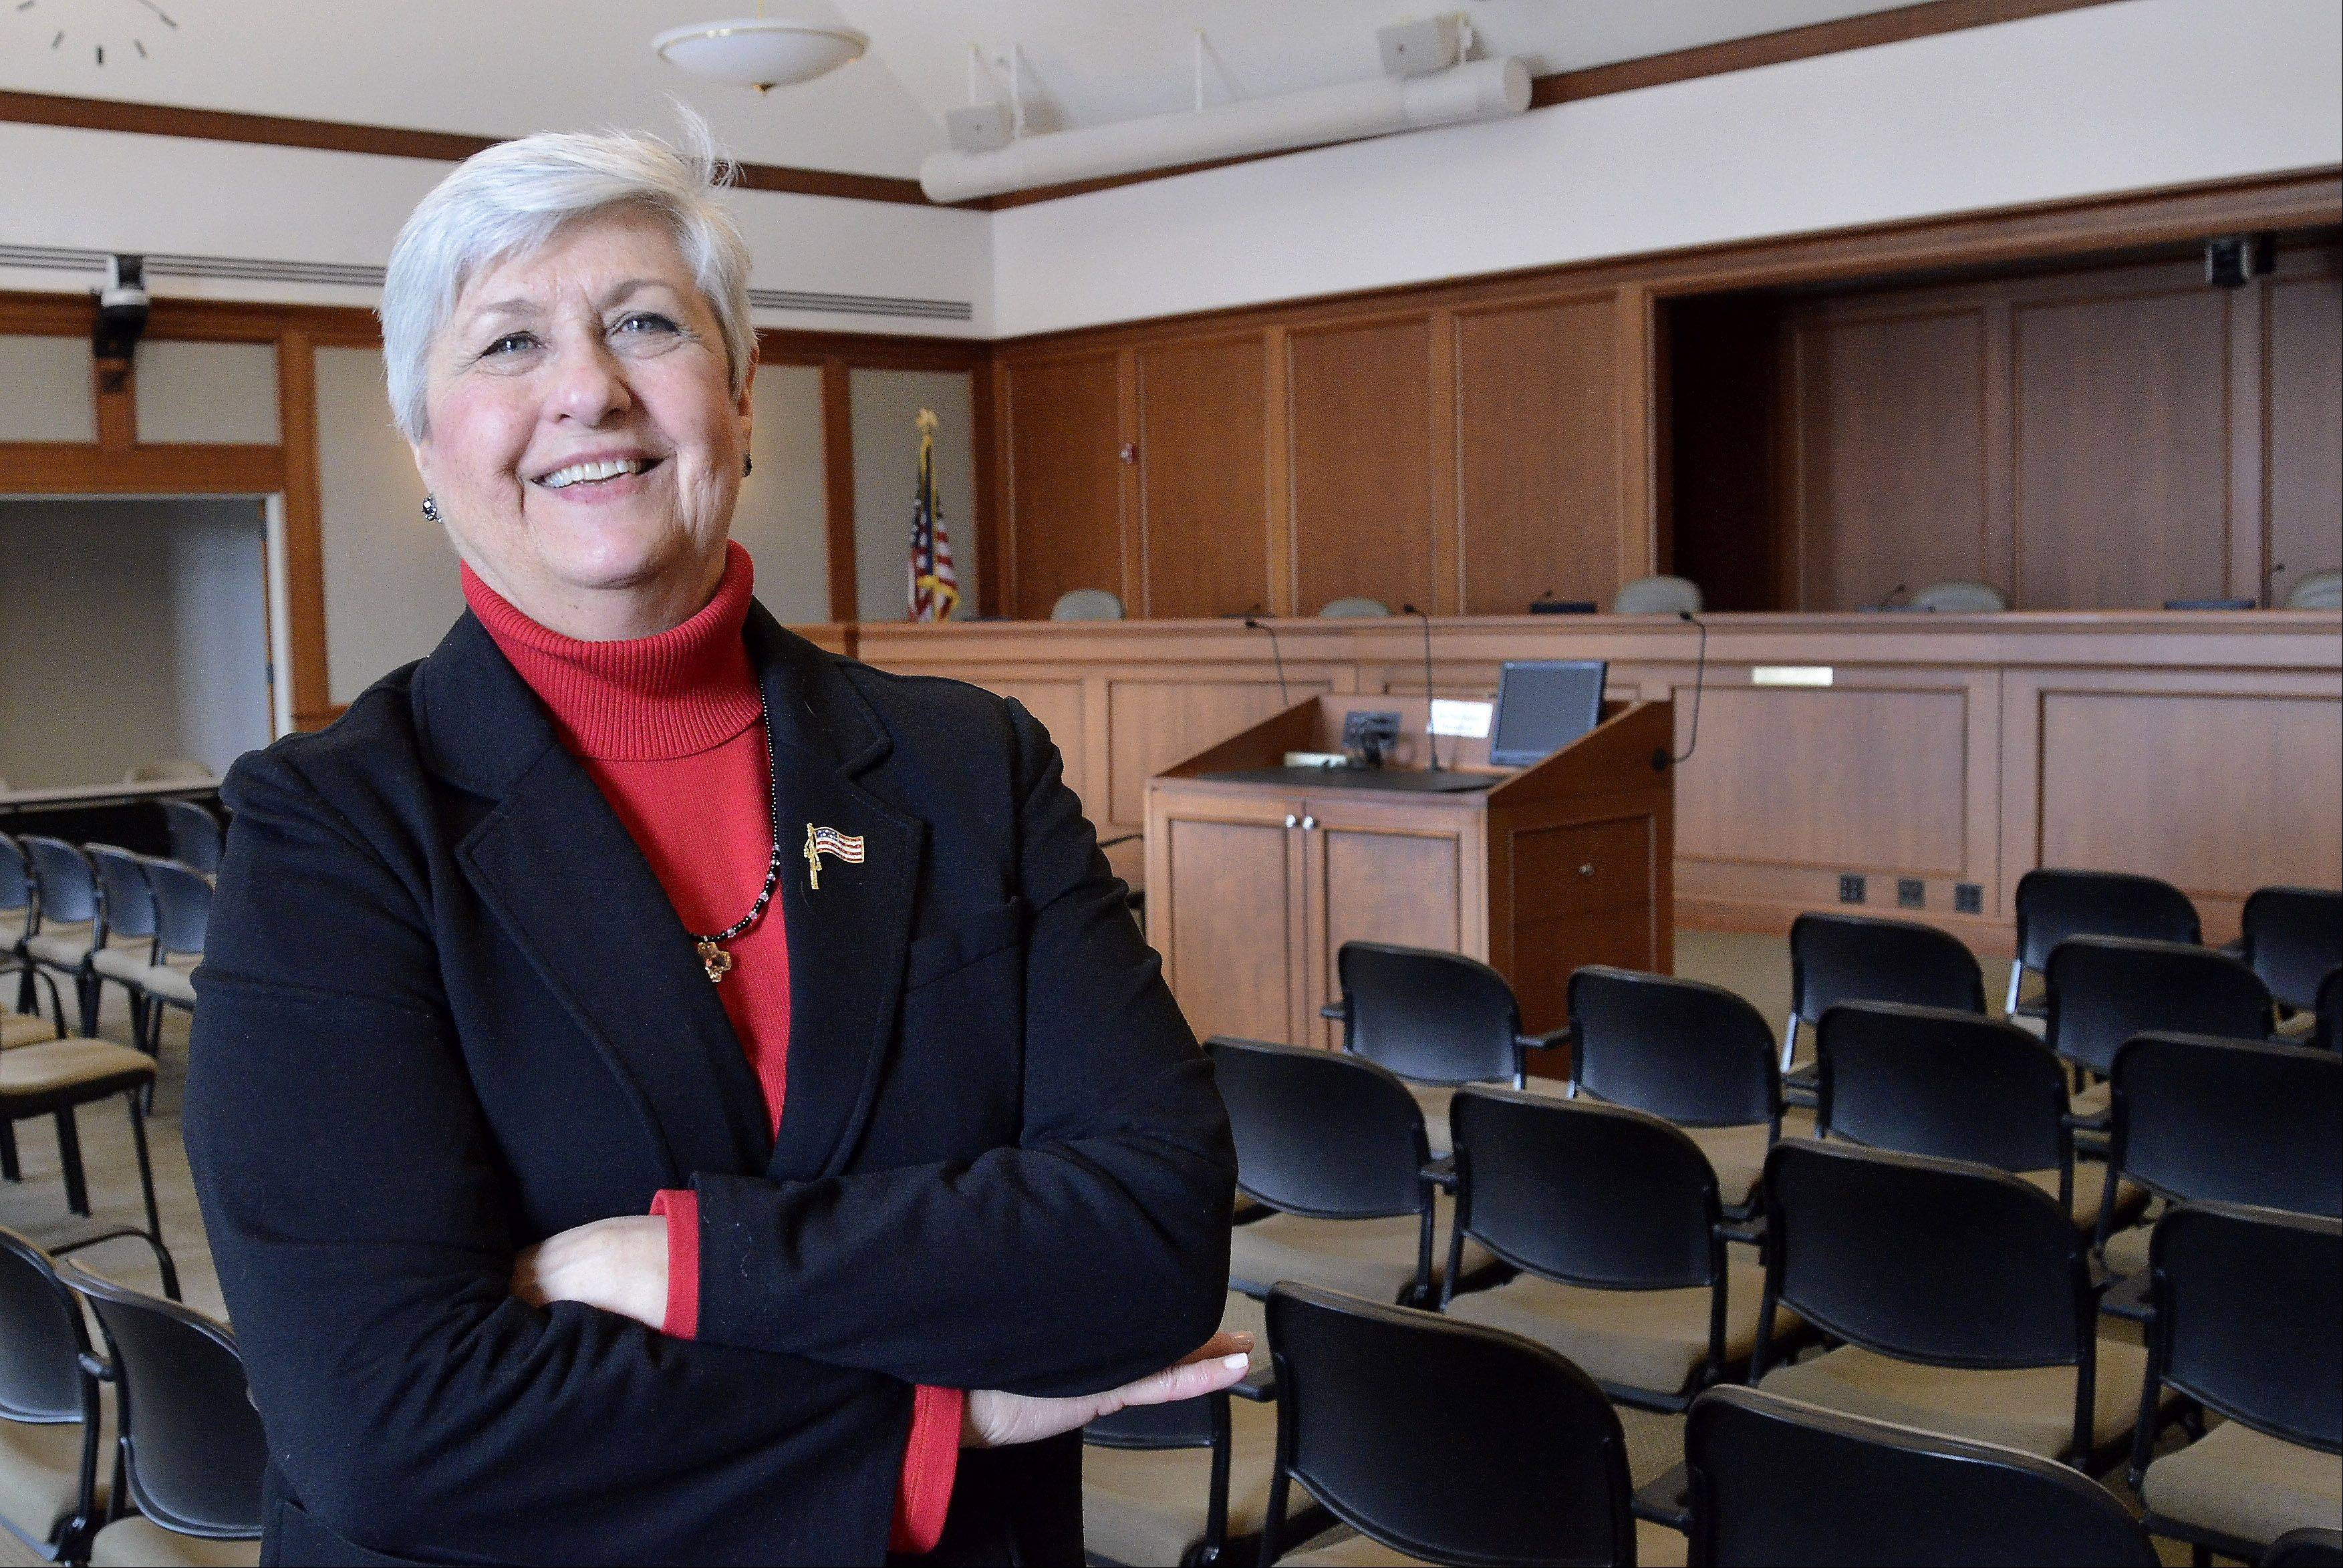 Mount Prospect Mayor Irvana Wilks will step down later this spring, bringing an end to more than 25 years of service to the village.